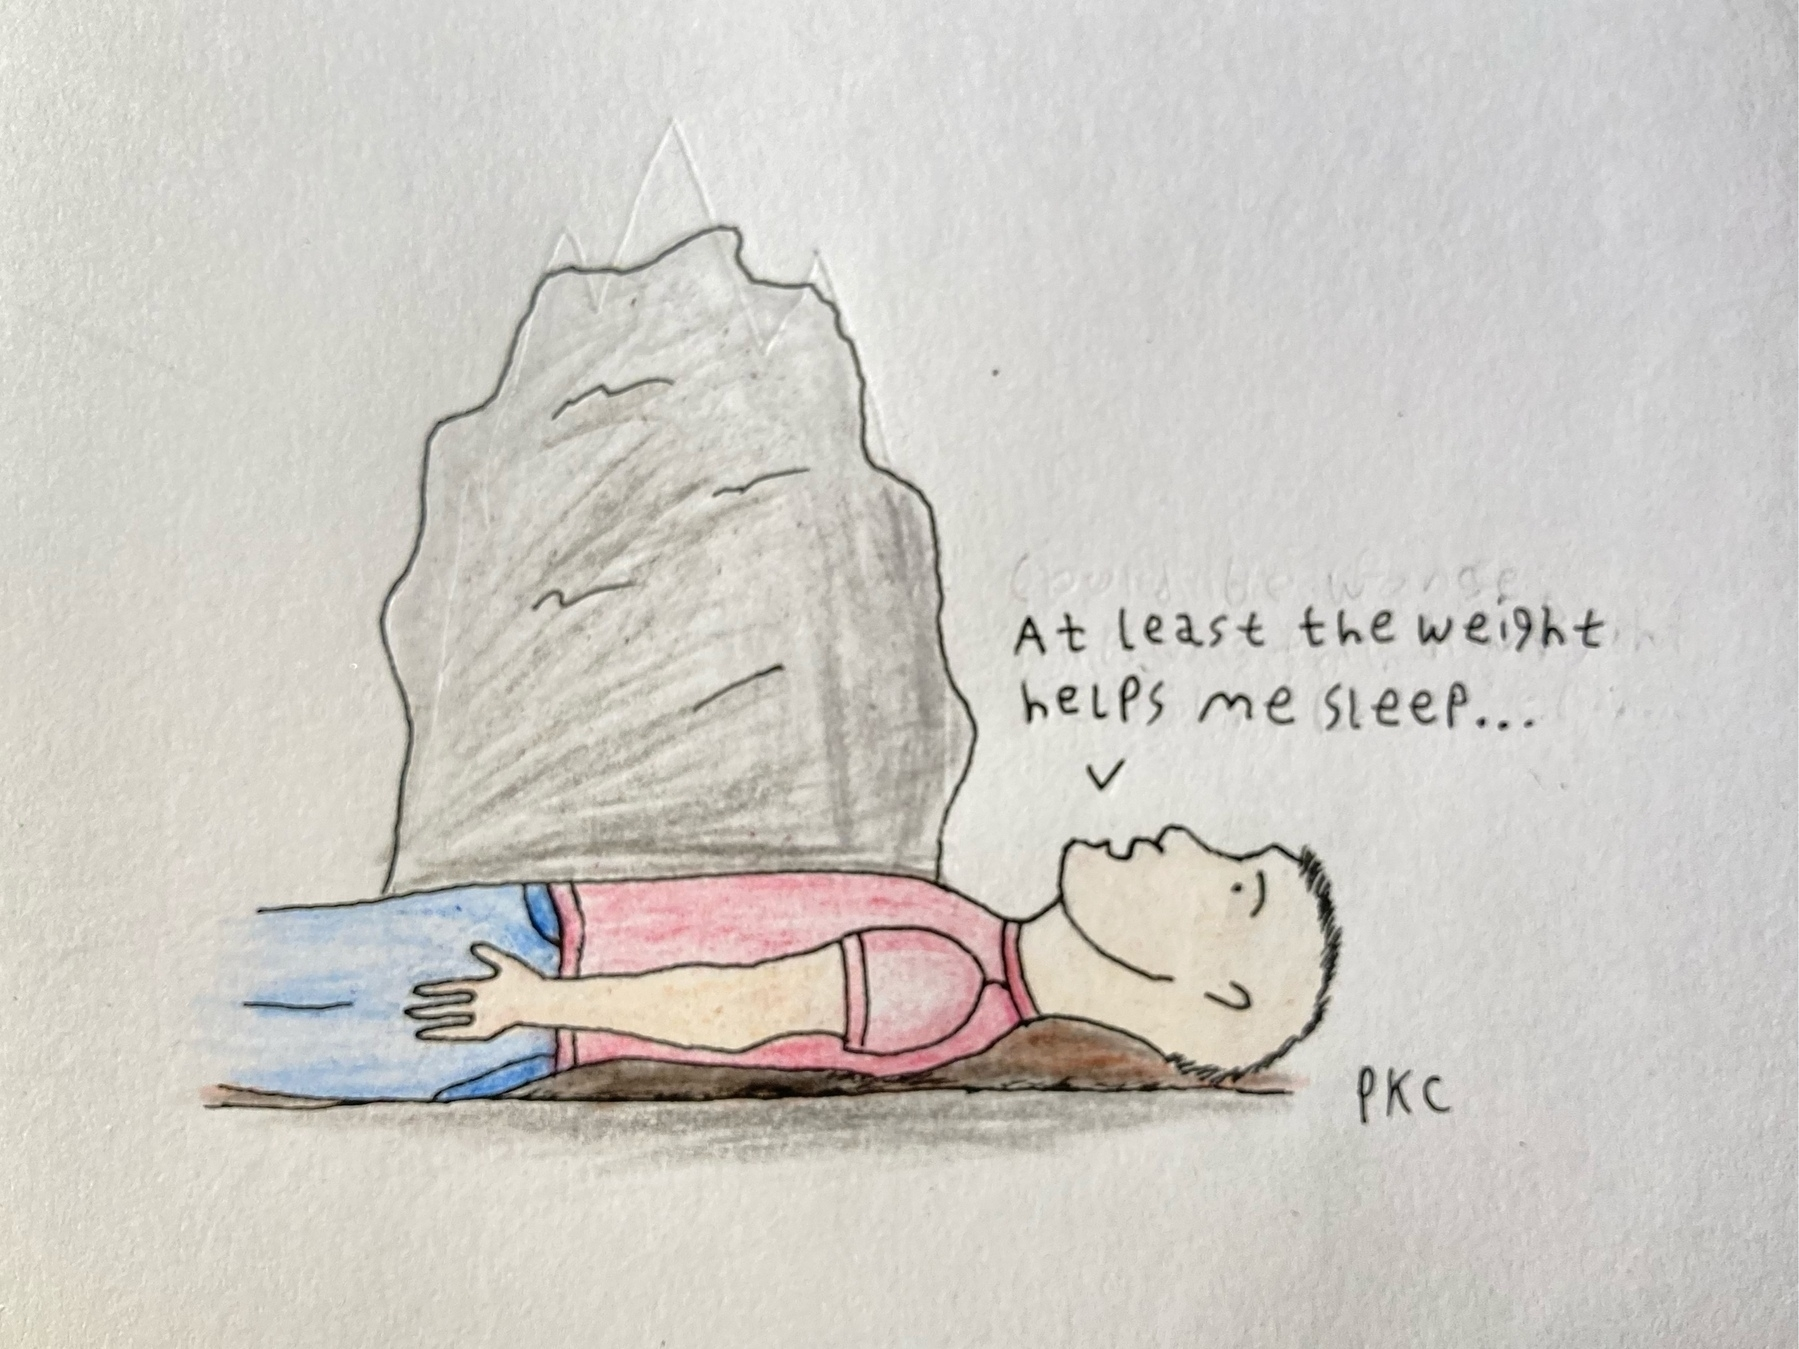 man trapped under large rock: at least the weight helps me sleep...